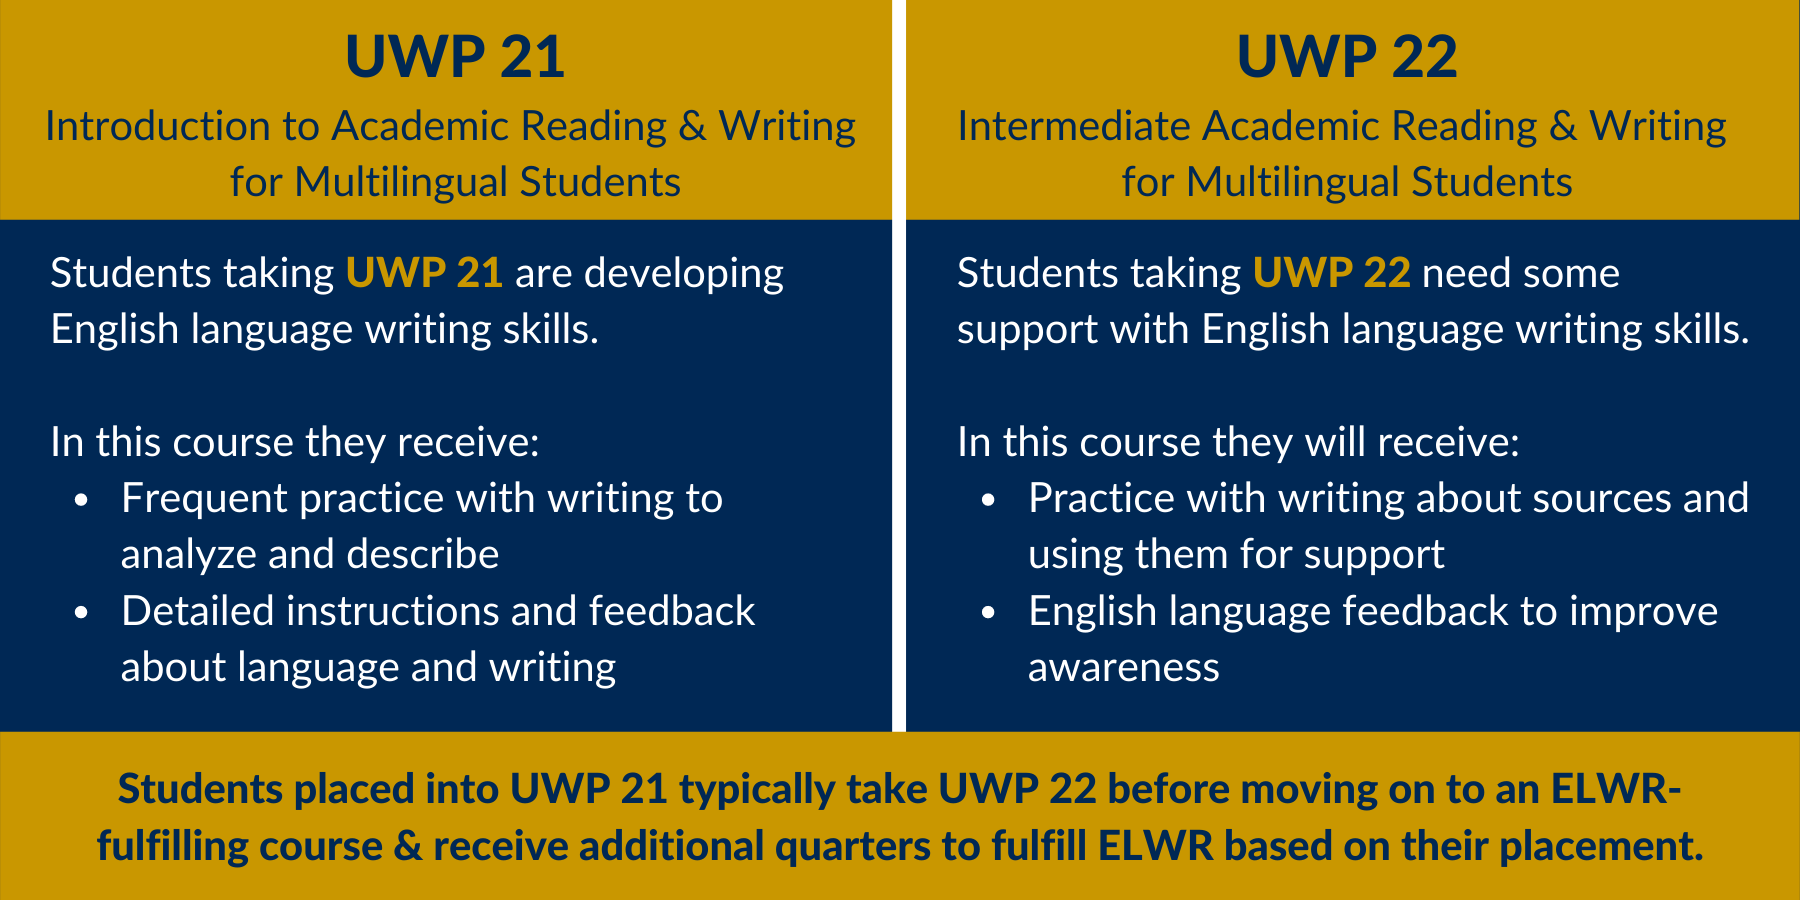 A chart with information about the different course options in the Pre-ELWR Multilingual Pathway, which includes UWP 21 and UWP 22.